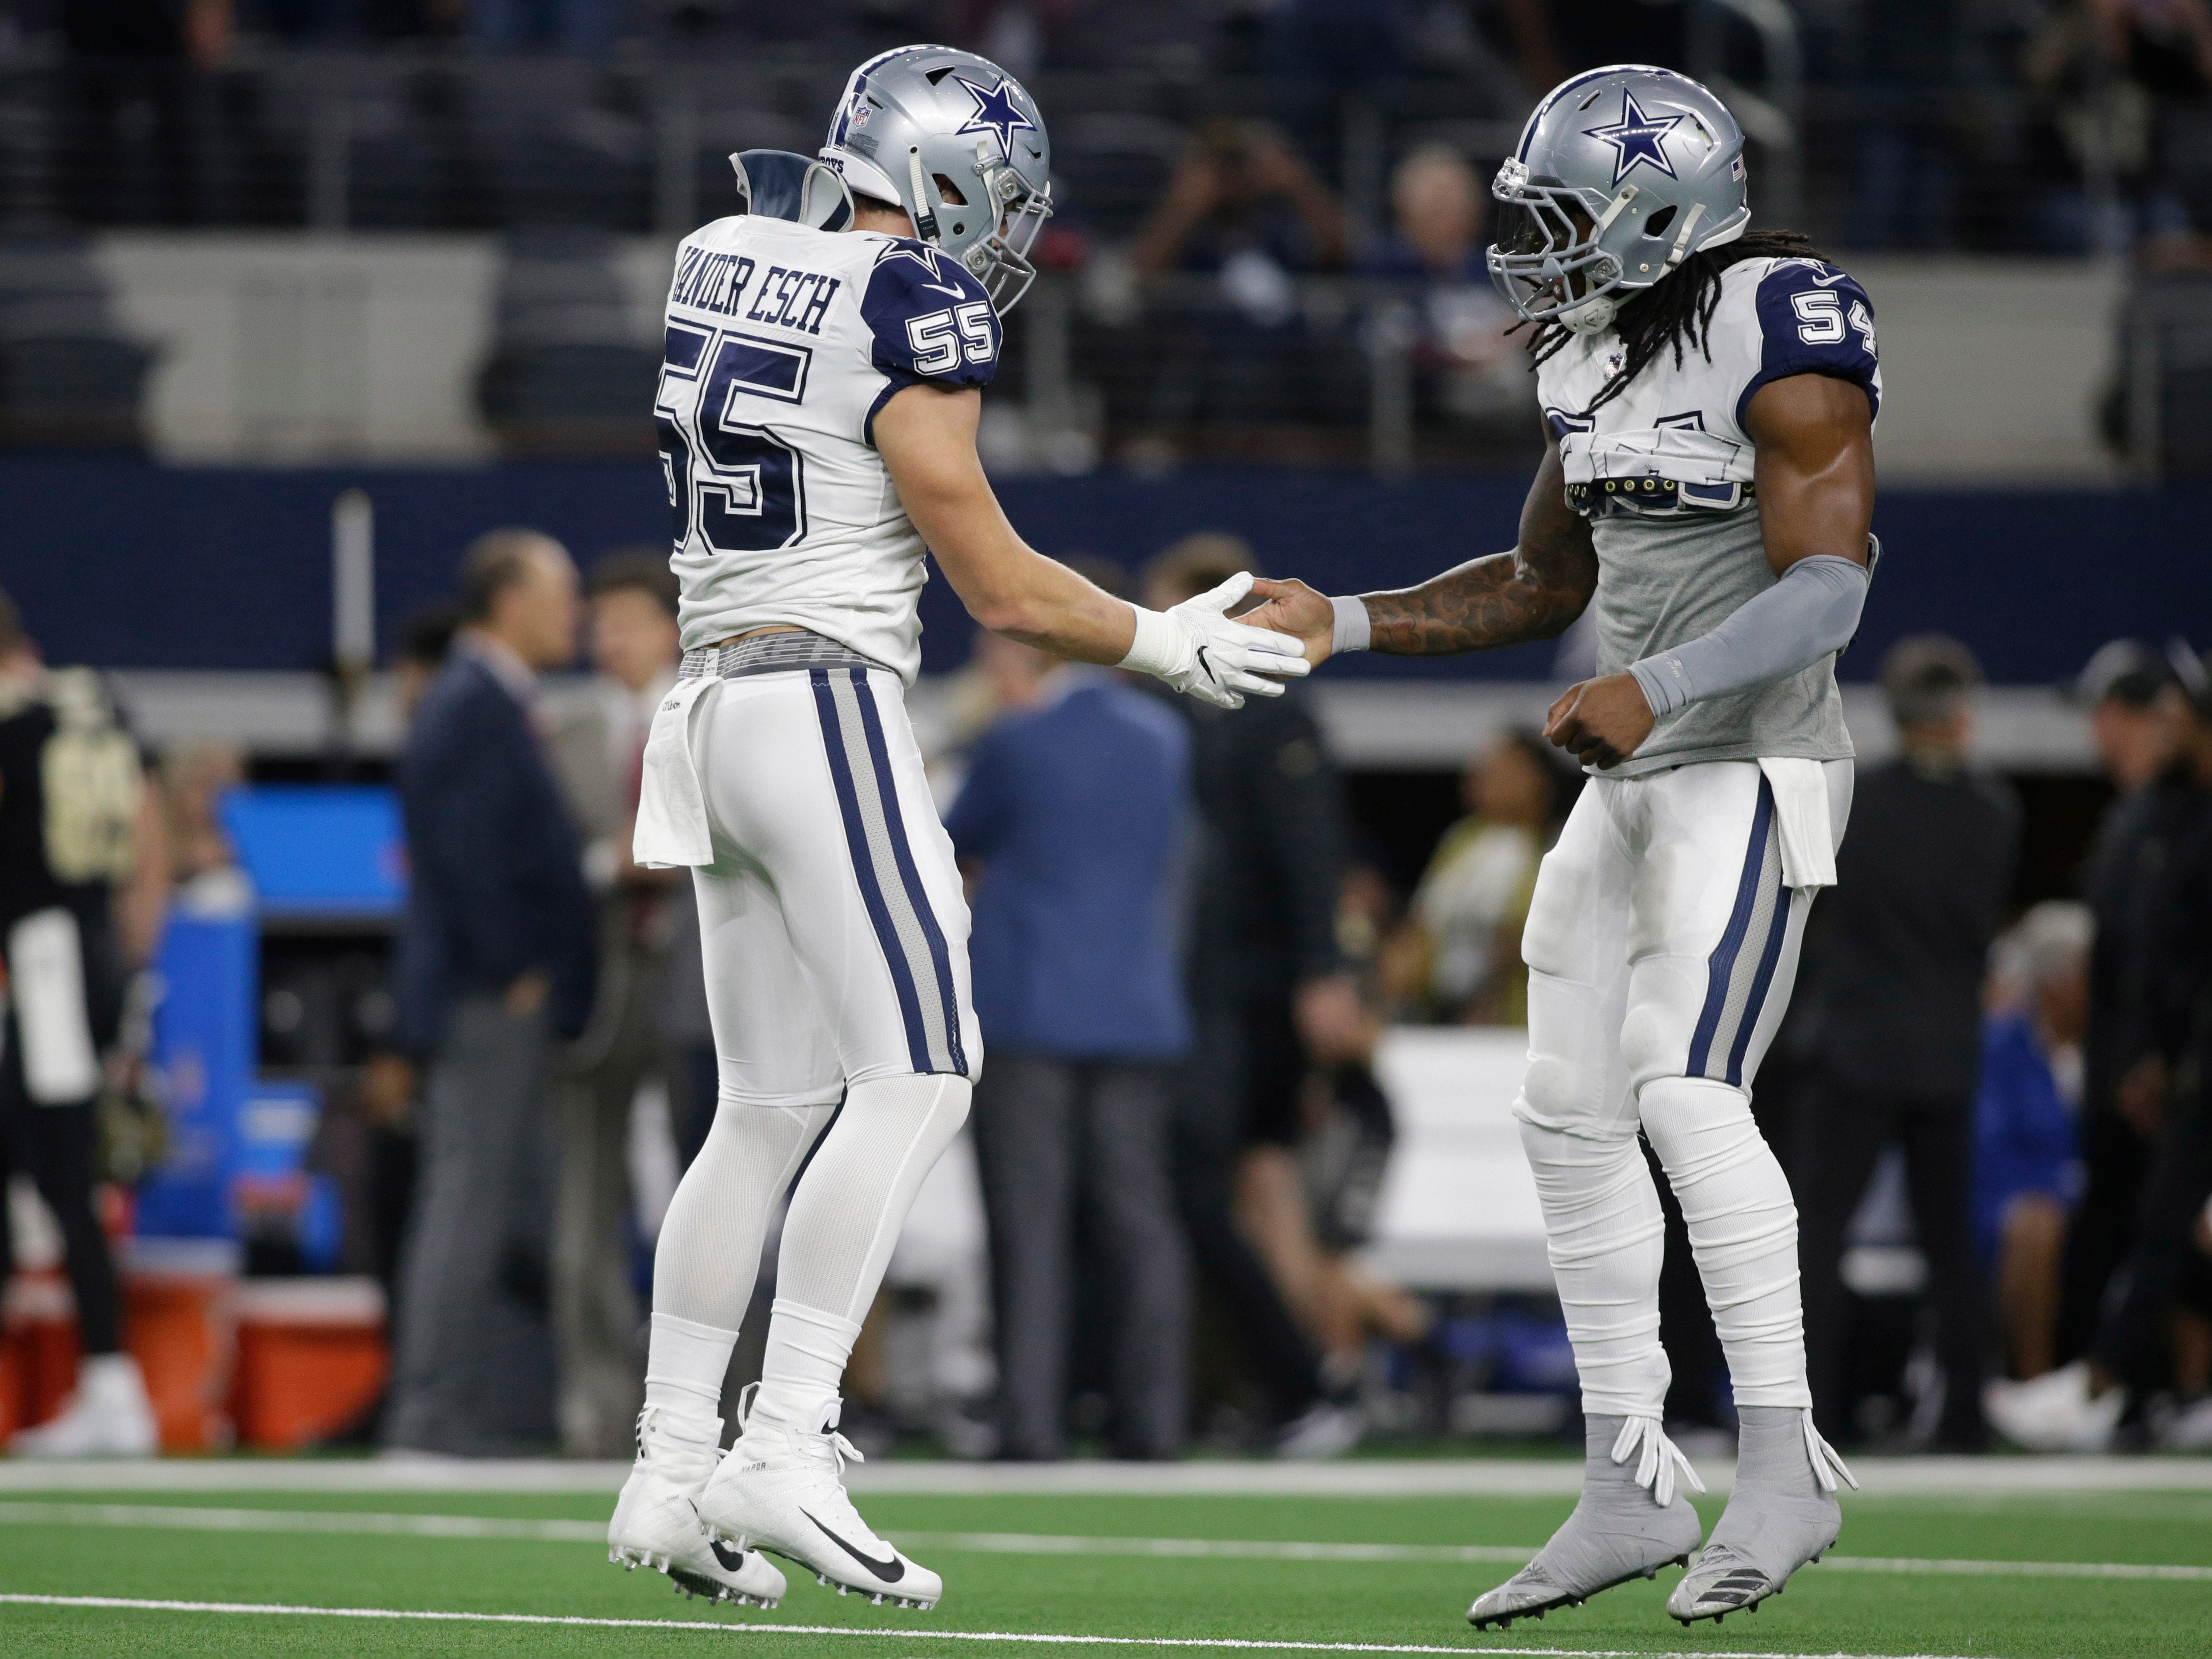 Dallas Cowboys outside linebacker Leighton Vander Esch (55) and middle linebacker Jaylon Smith (54) react on the field before the game against the New Orleans Saints at AT&T Stadium.